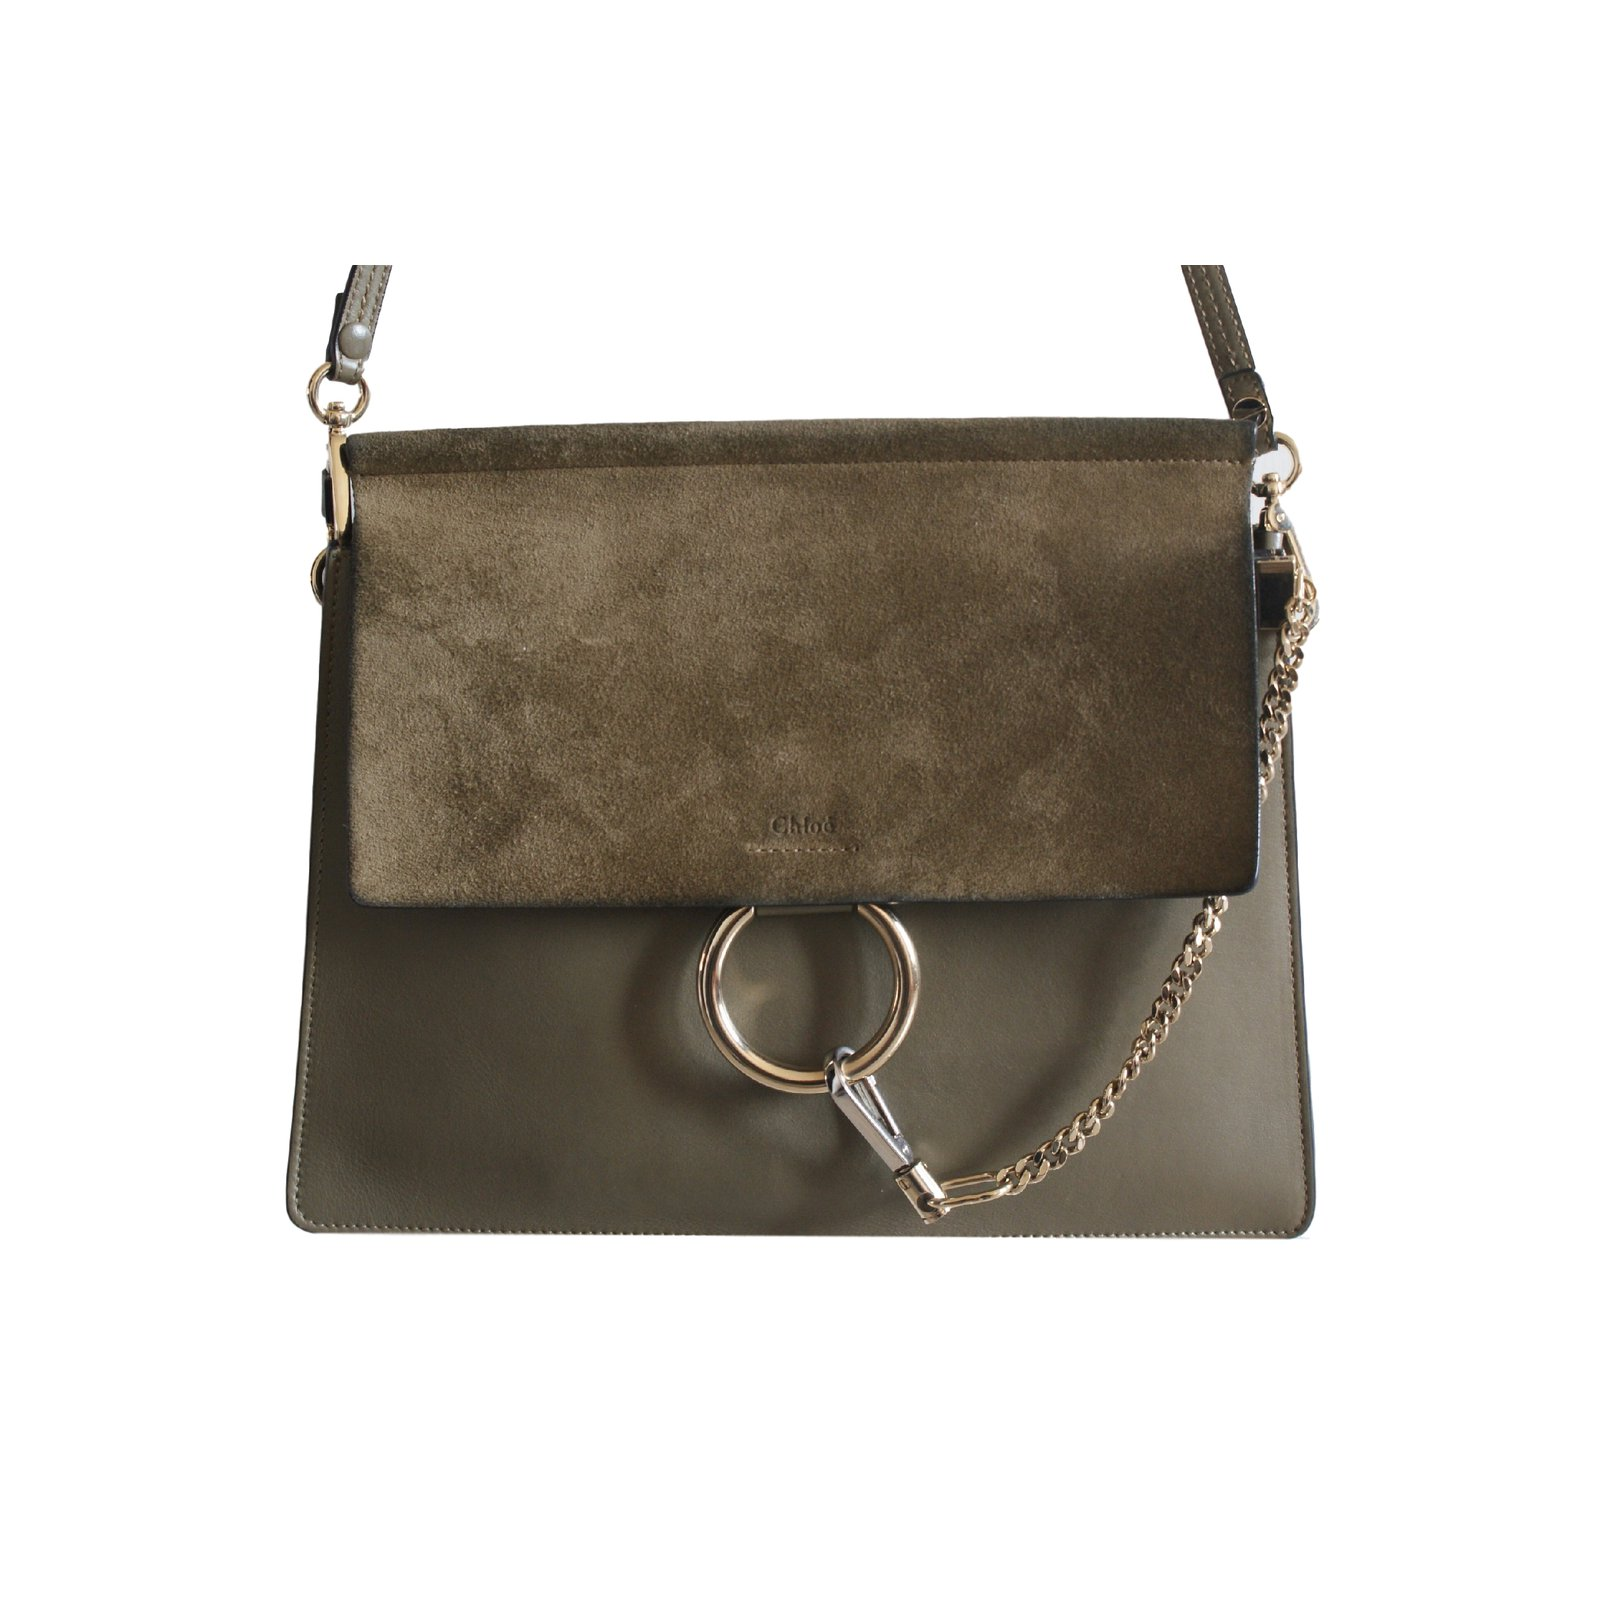 Exceptionnel Chloé Handbags Handbags Leather Khaki ref.14760 - Joli Closet NA92